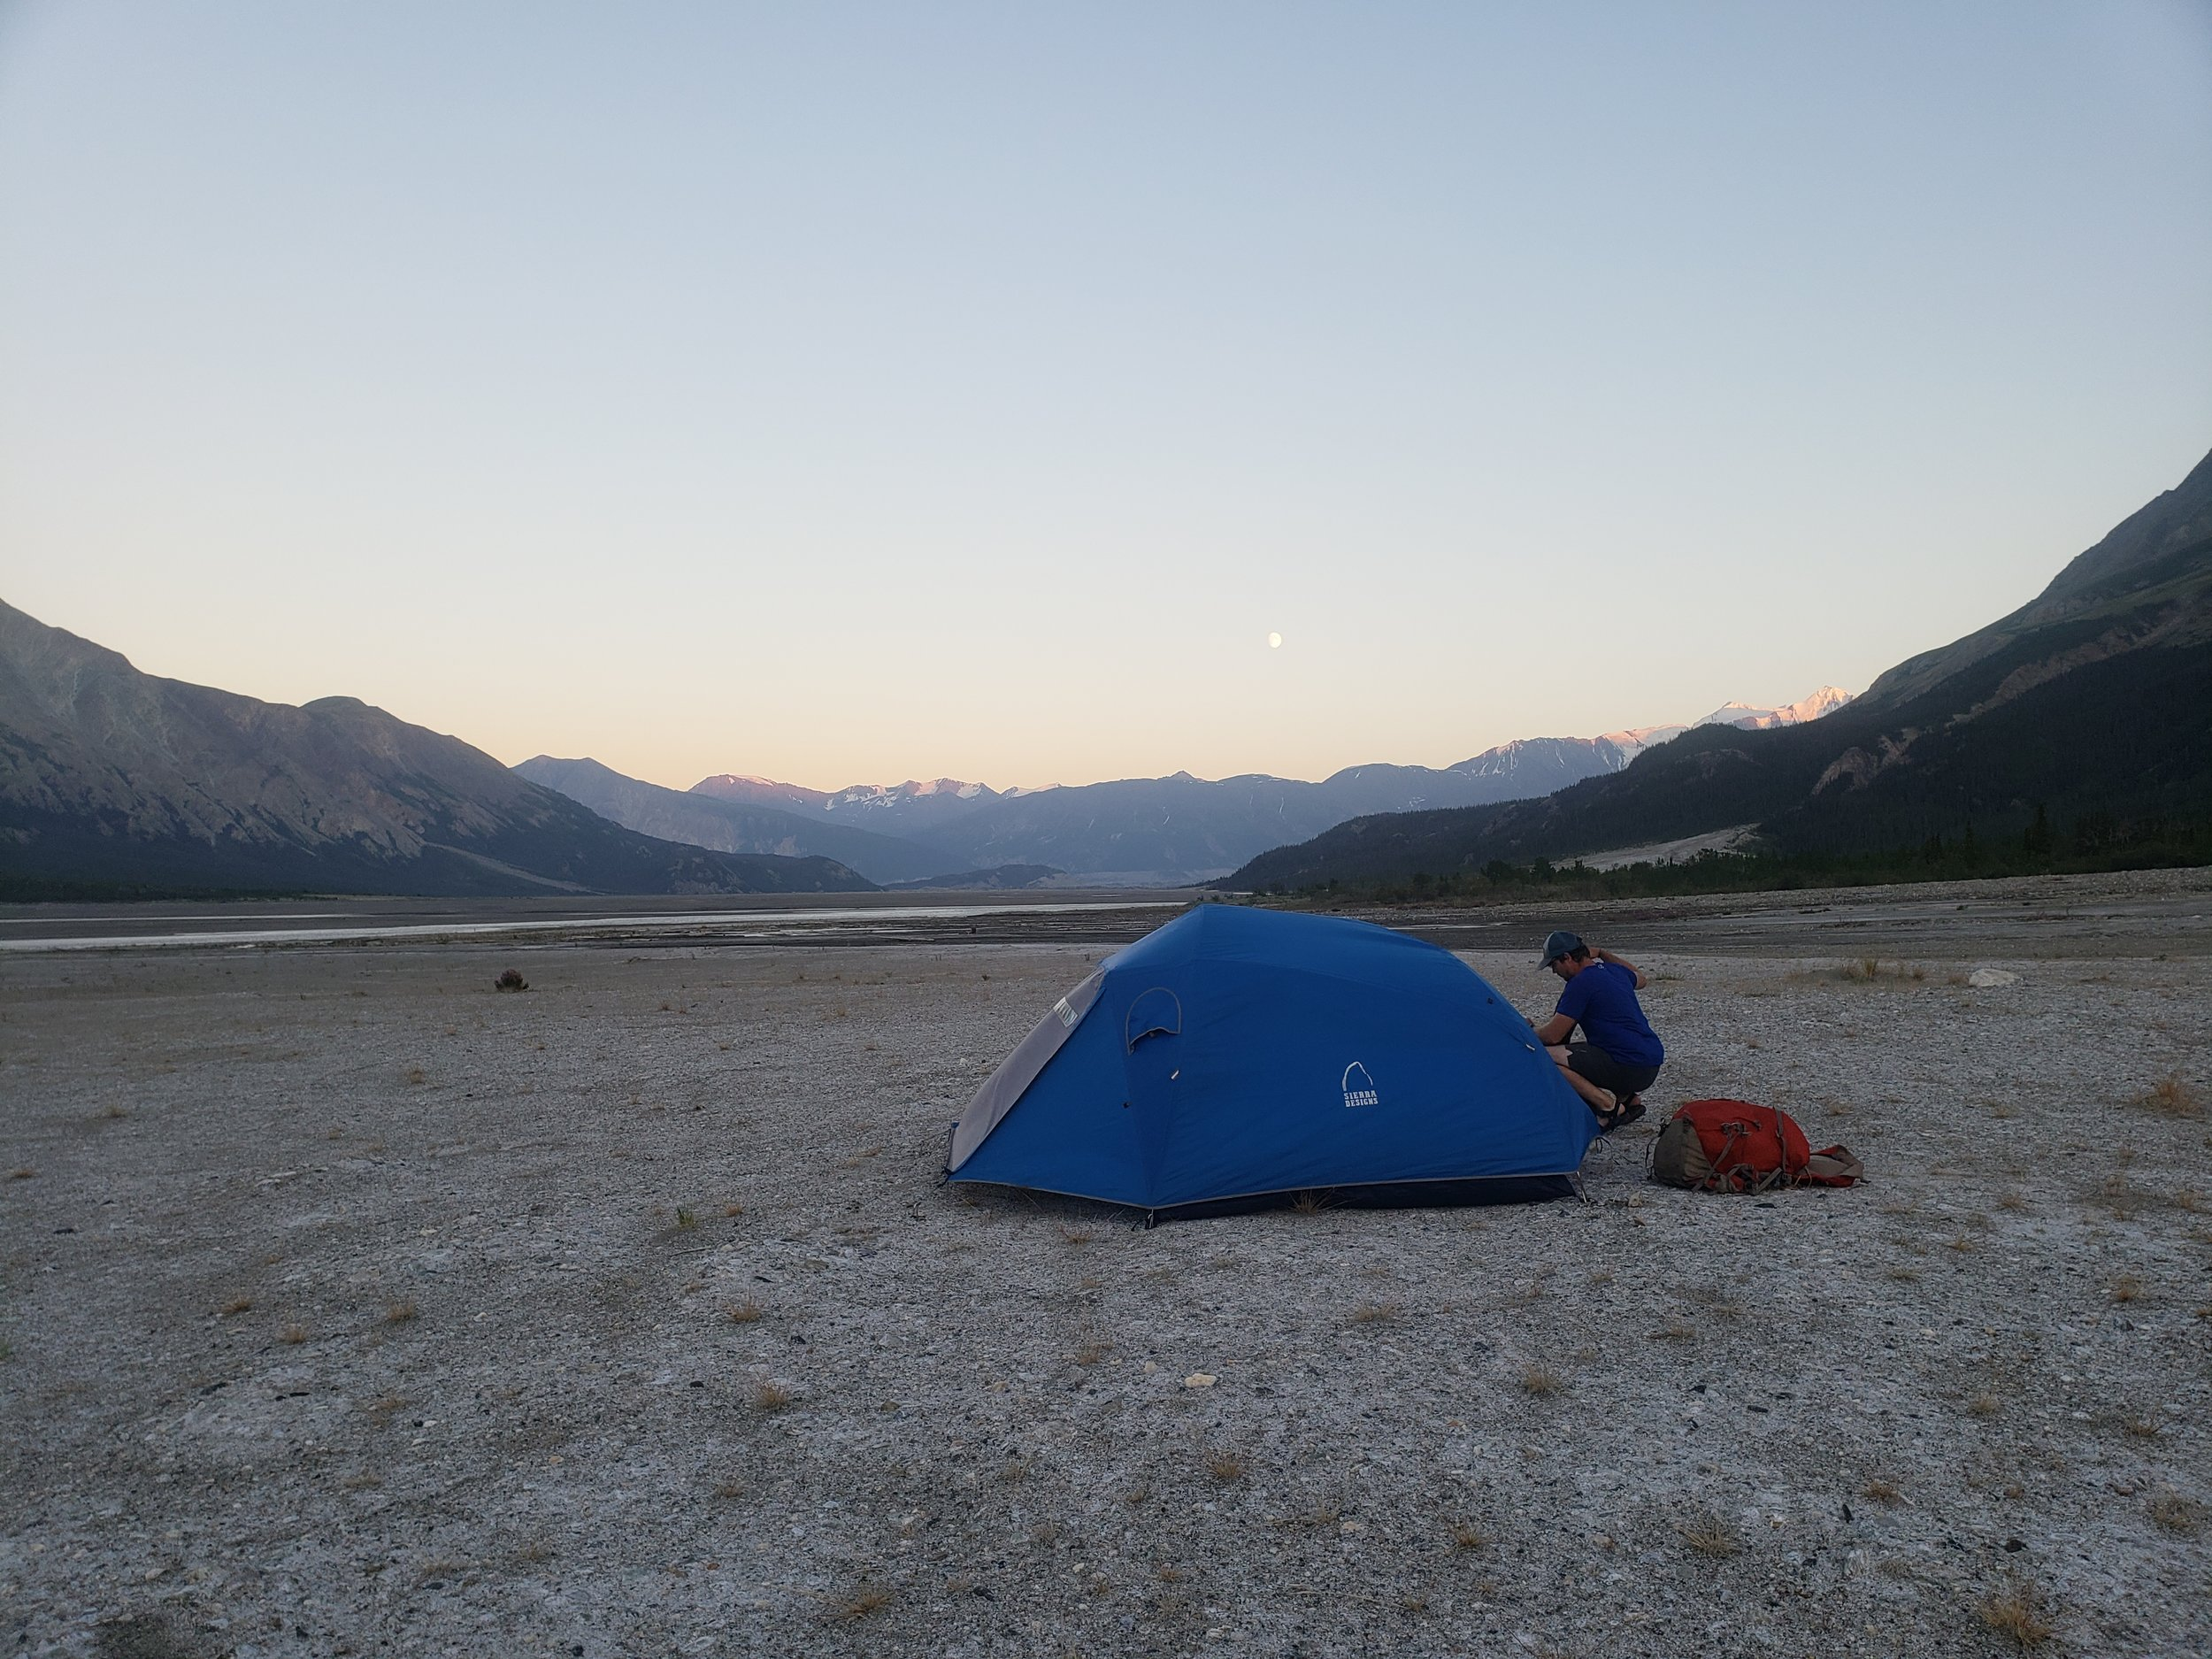 Ian gets his sleeping bag out while the moon rises over the mountains behind.